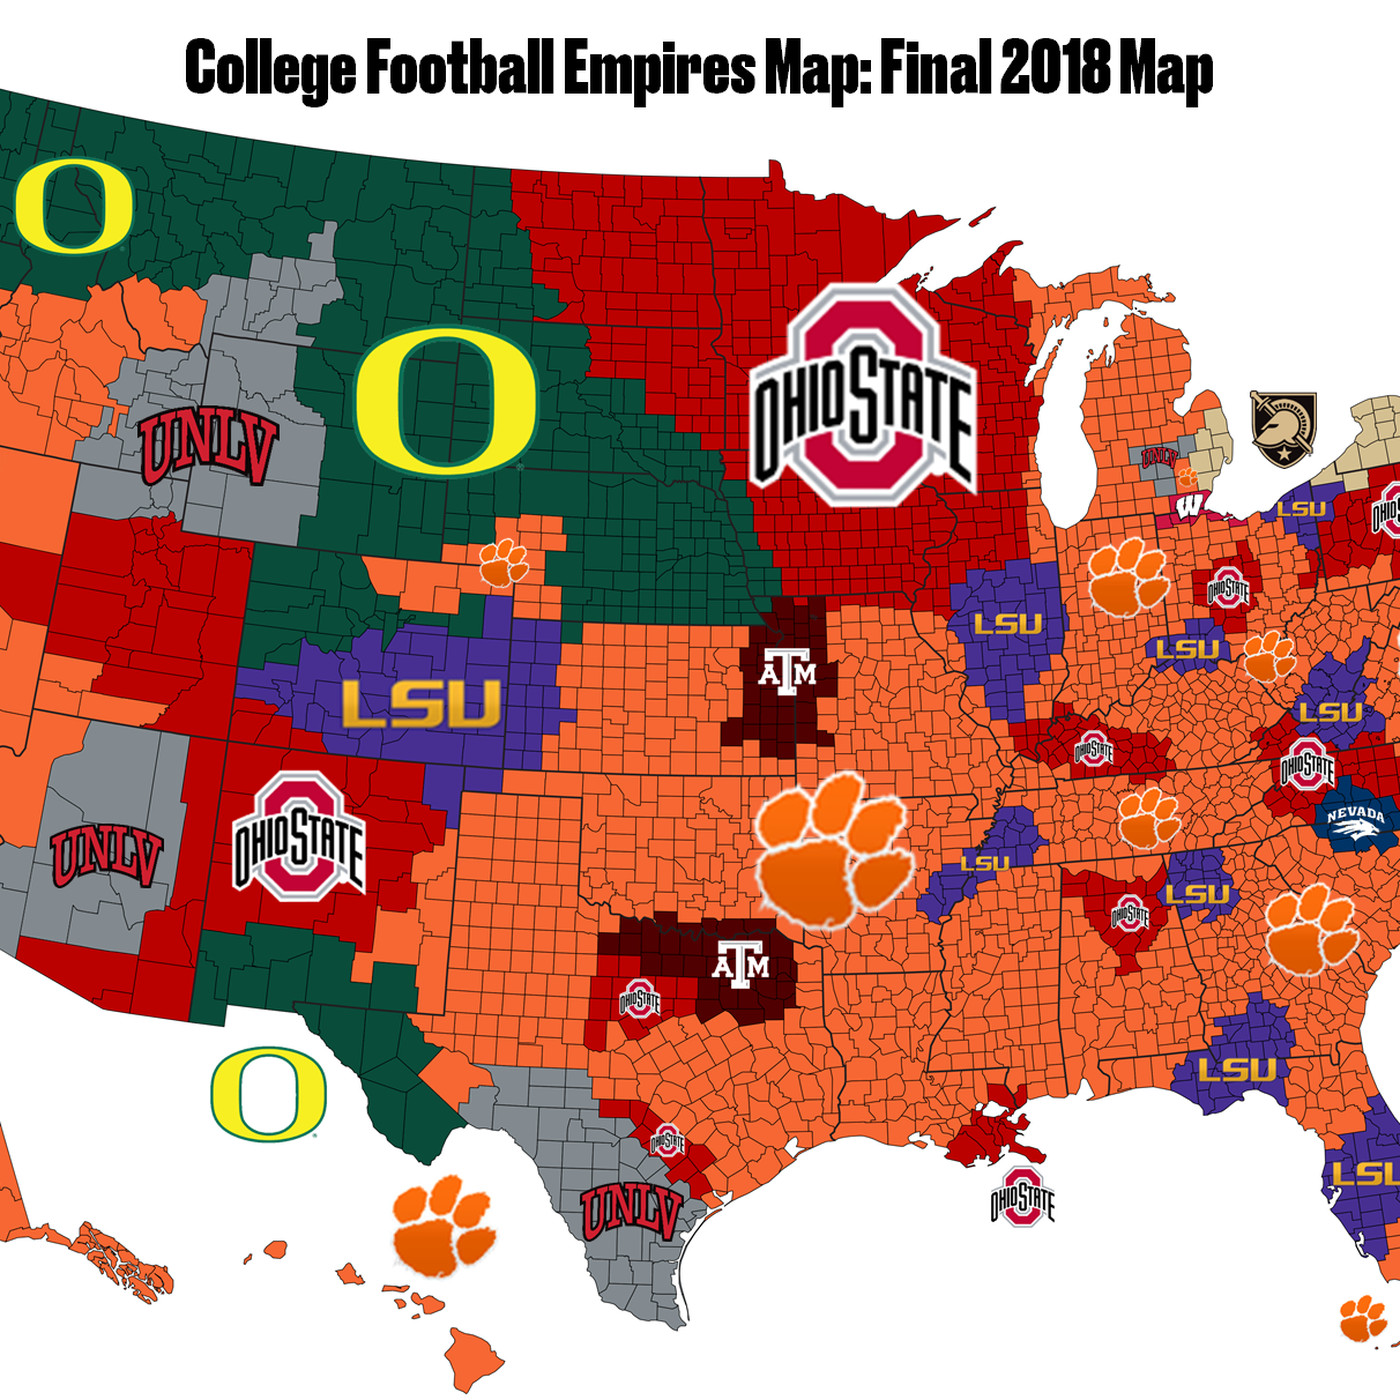 Final 2018 College Football Empires Map Bow To Clemson Sbnation Com